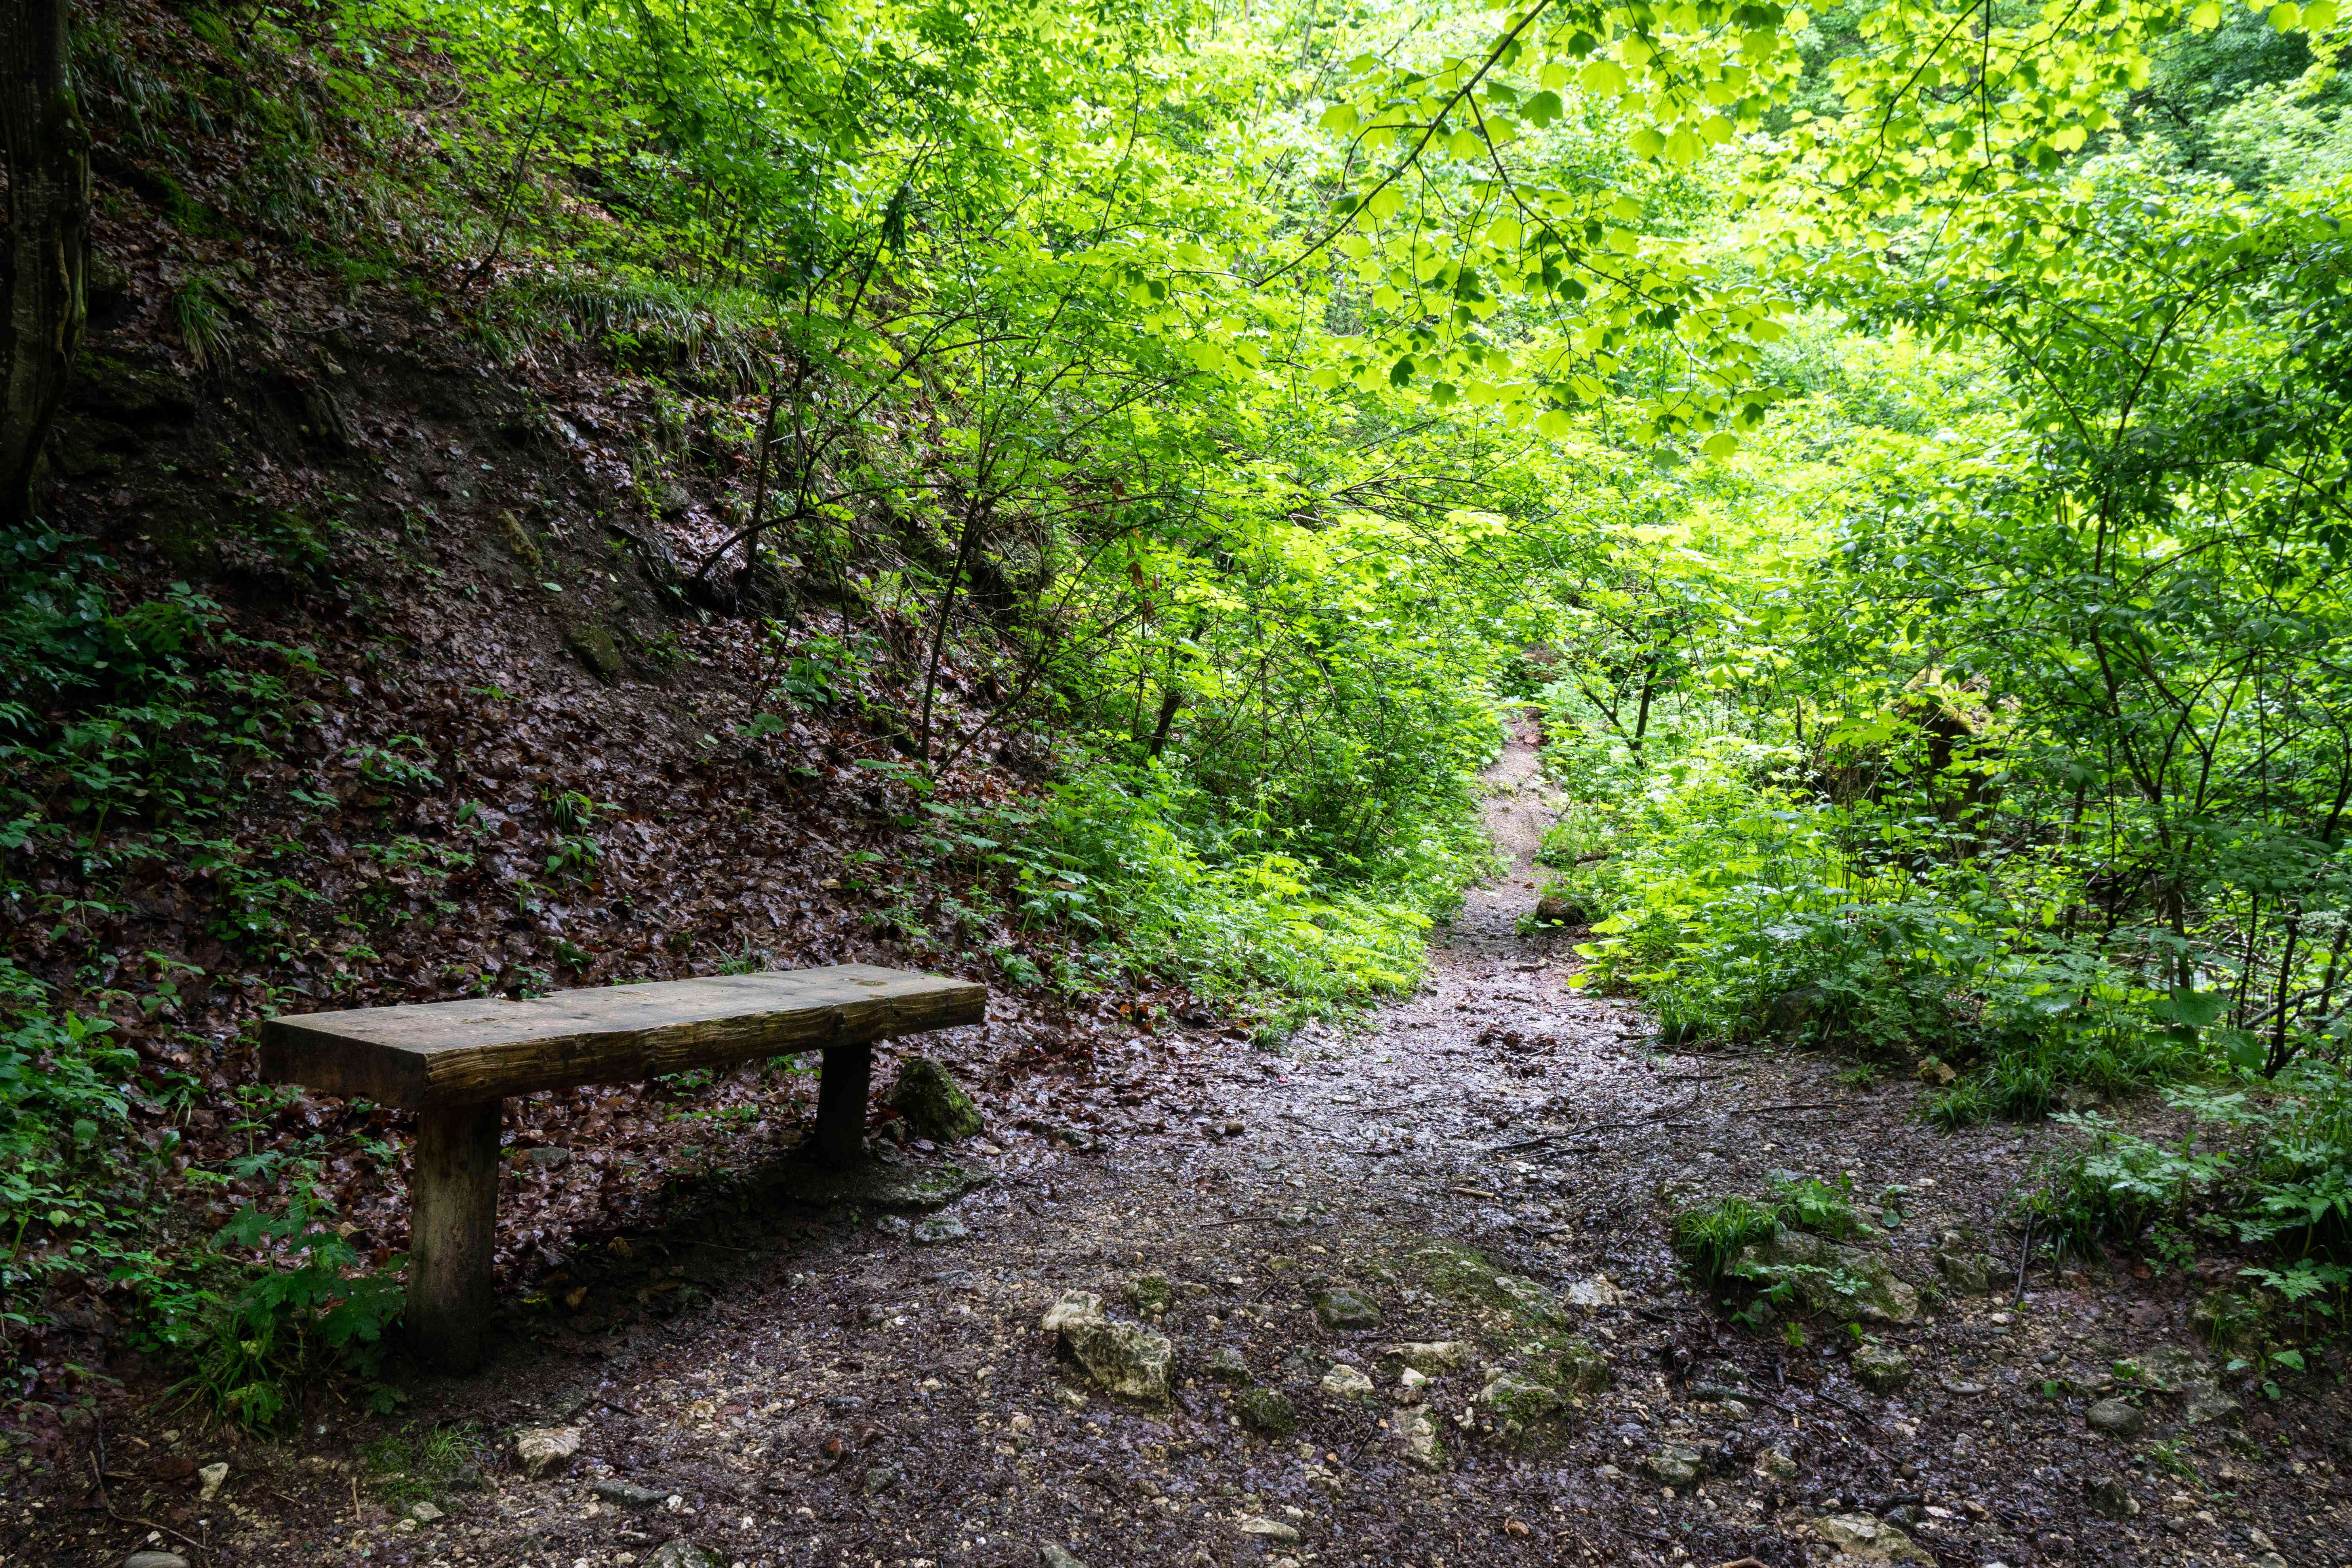 lone park bench on muddy path in middle of forest clearing